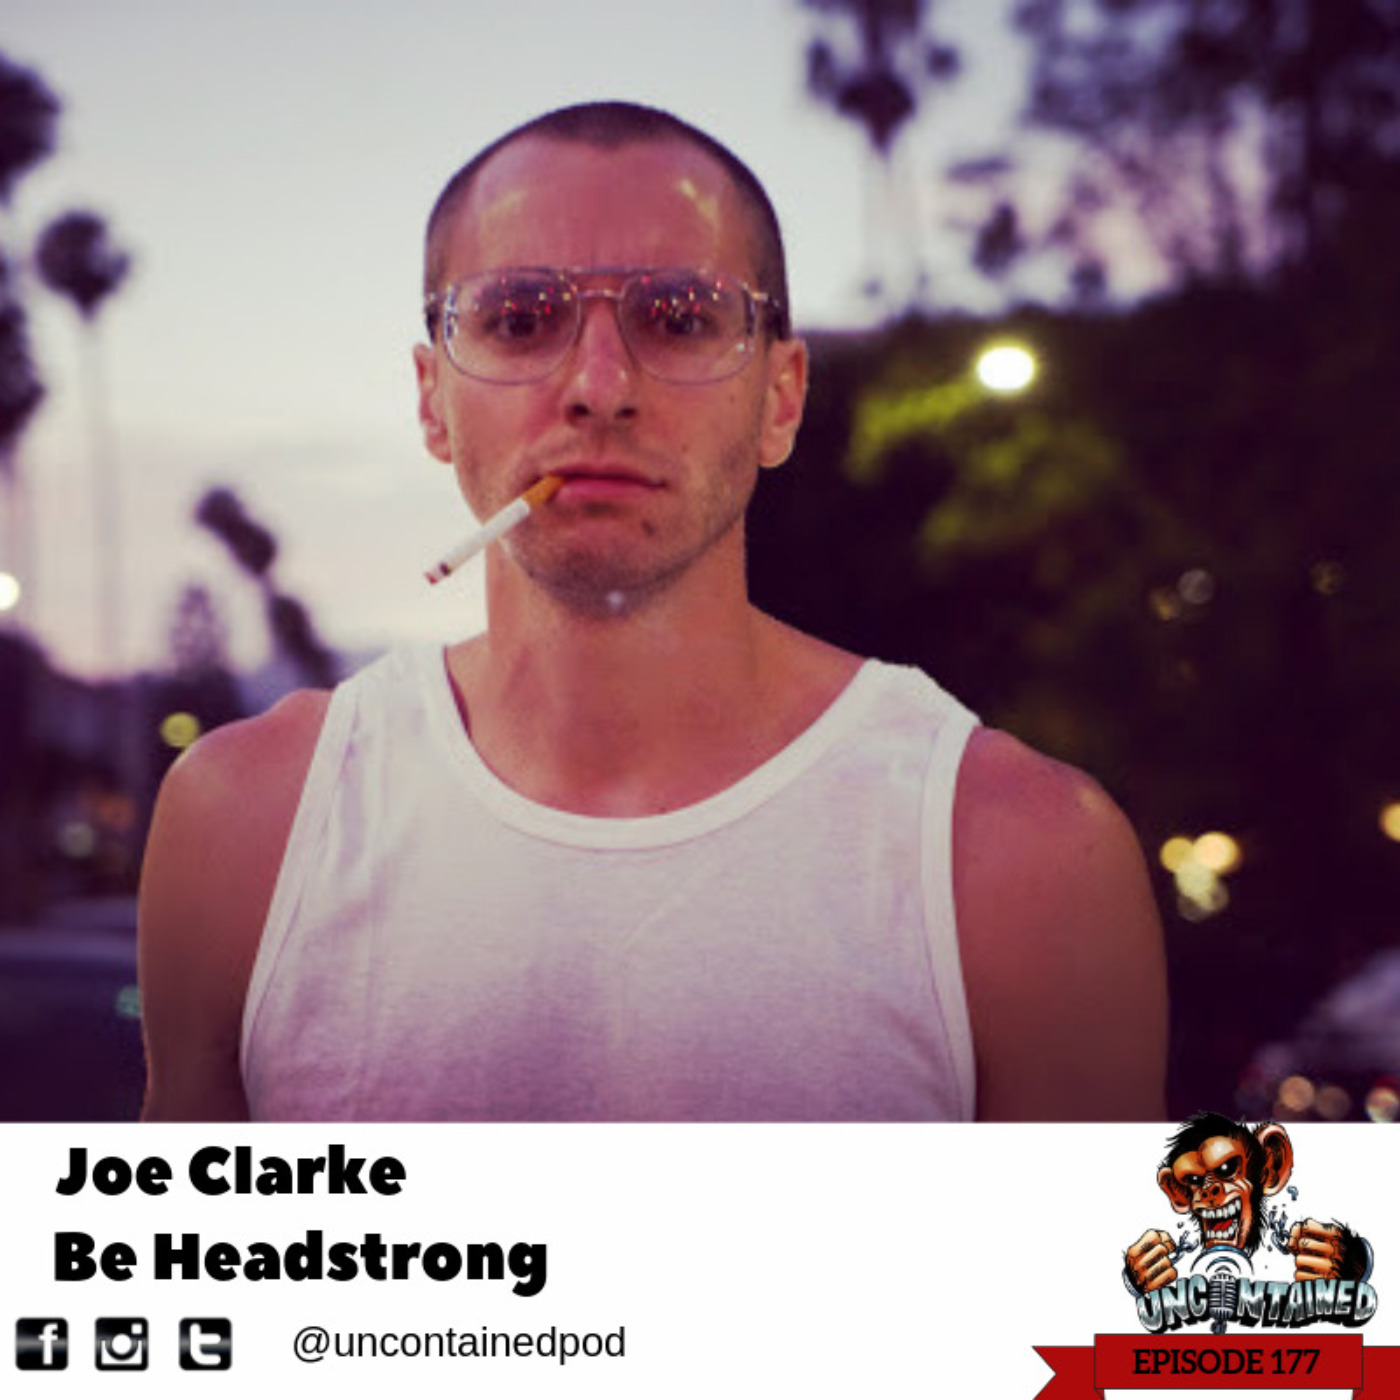 Episode 177: Joe Clarke - Be Headstrong